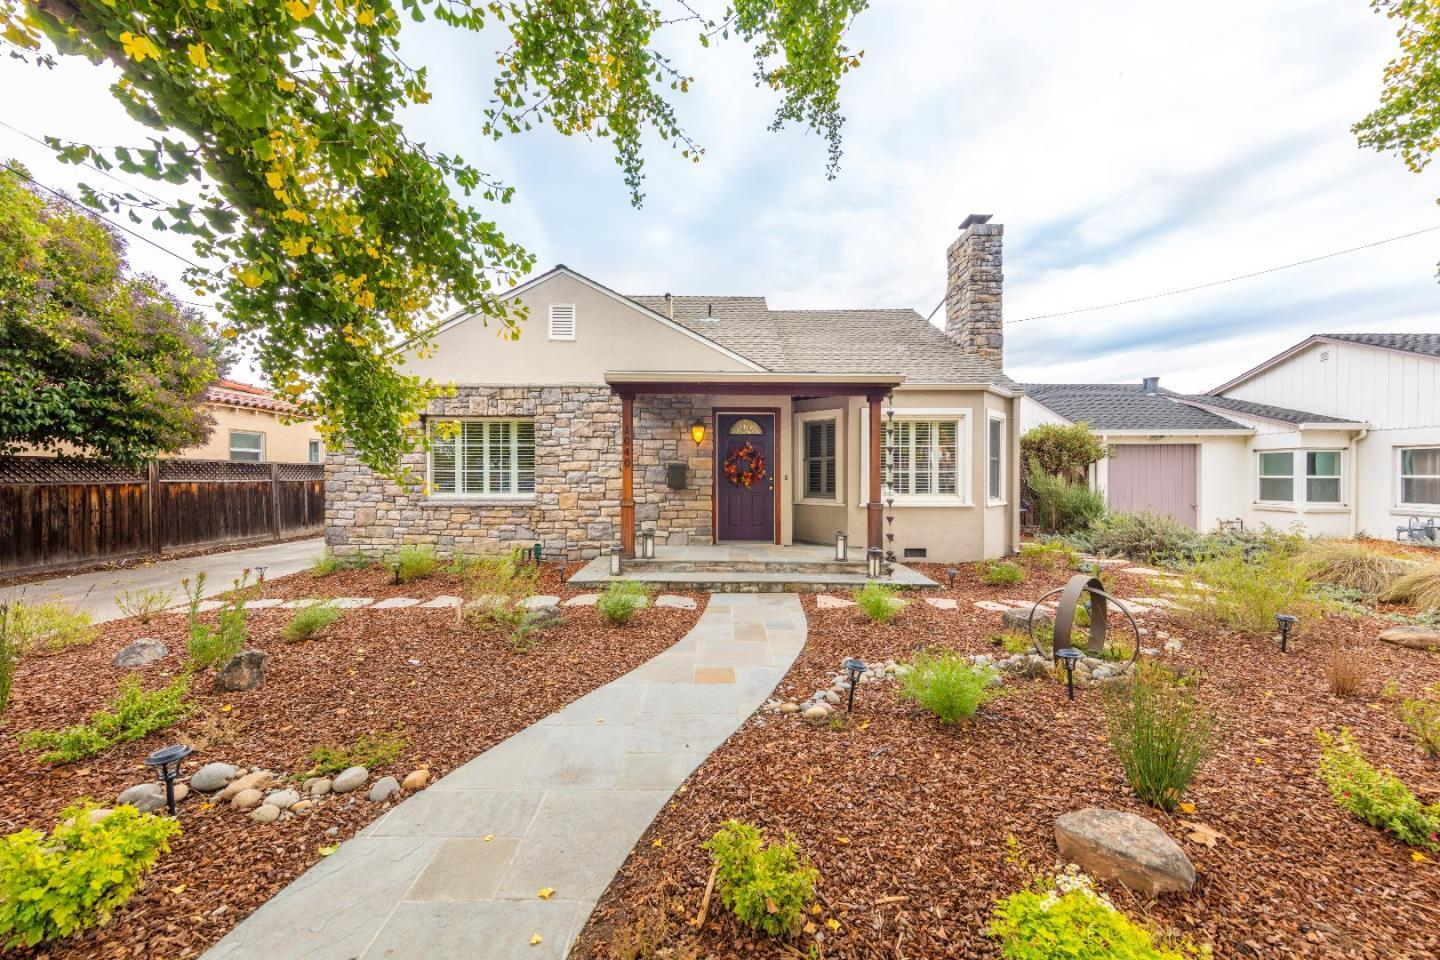 New Homes For Sale In Willow Glen Ca